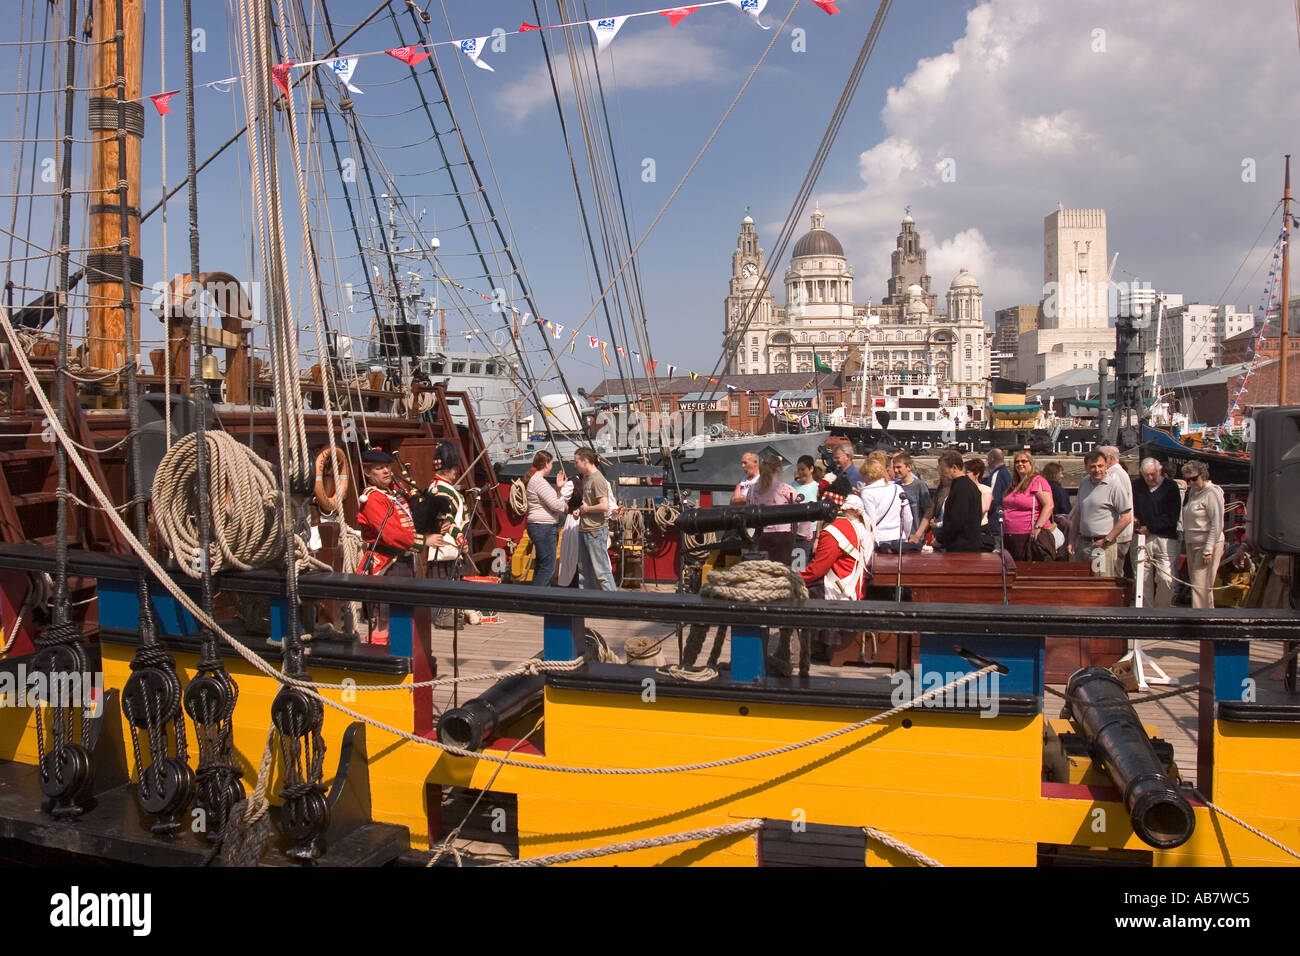 Merseyside Liverpool Mersey River Festival visitors on deck of the Grand Turk - Stock Image